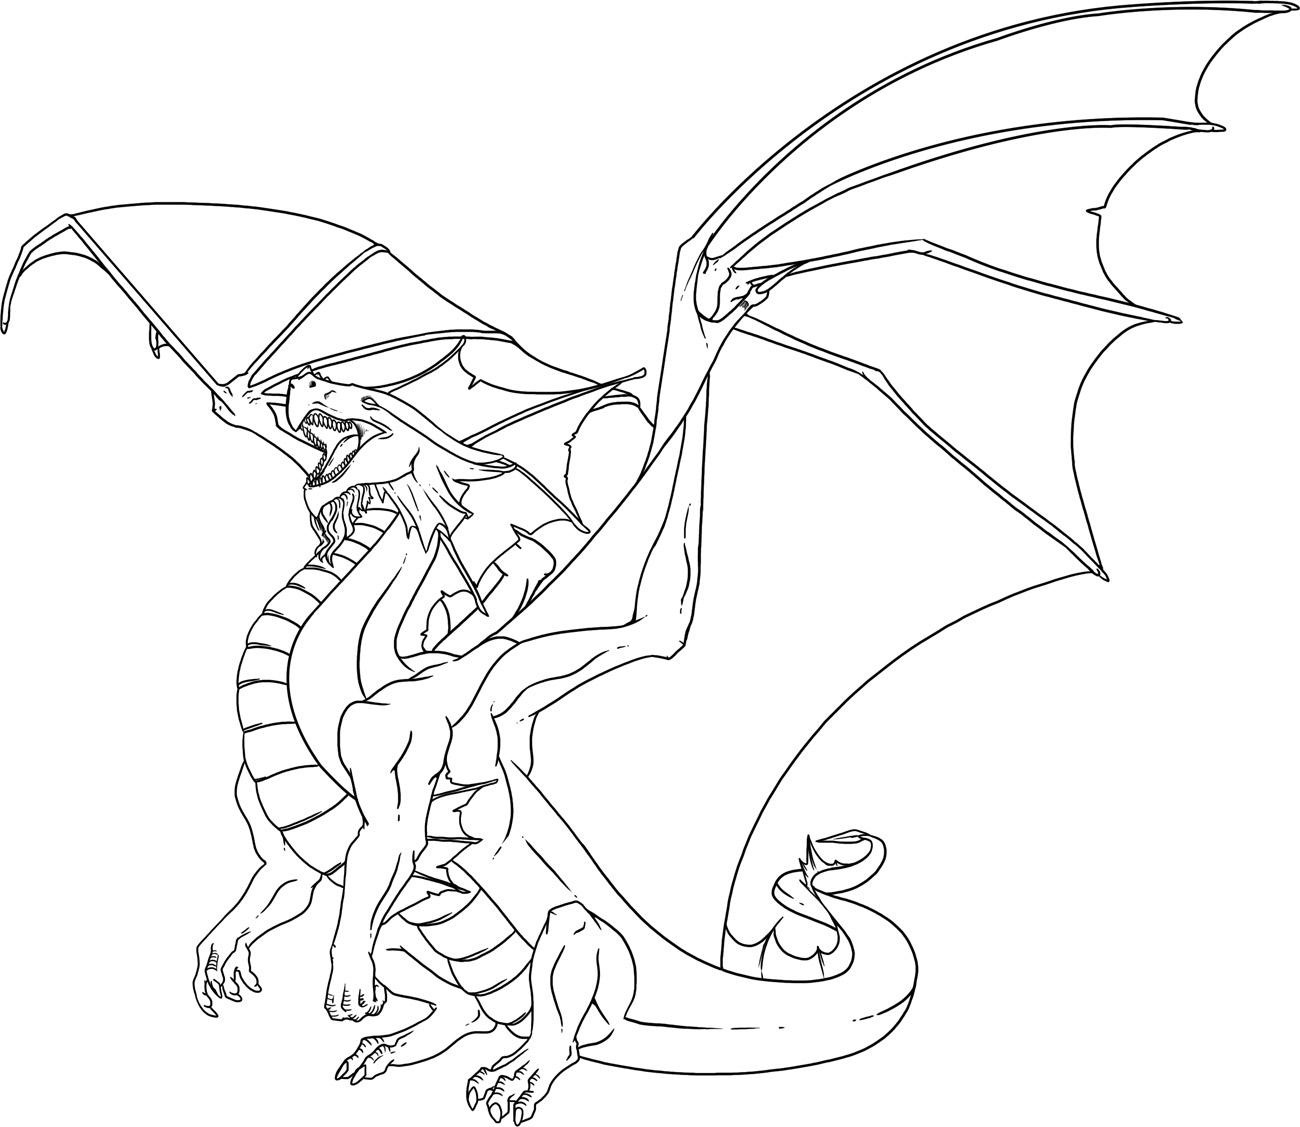 1300x1127 Dragon Coloring Pictures To Print Dragon Coloring Sheets To Print